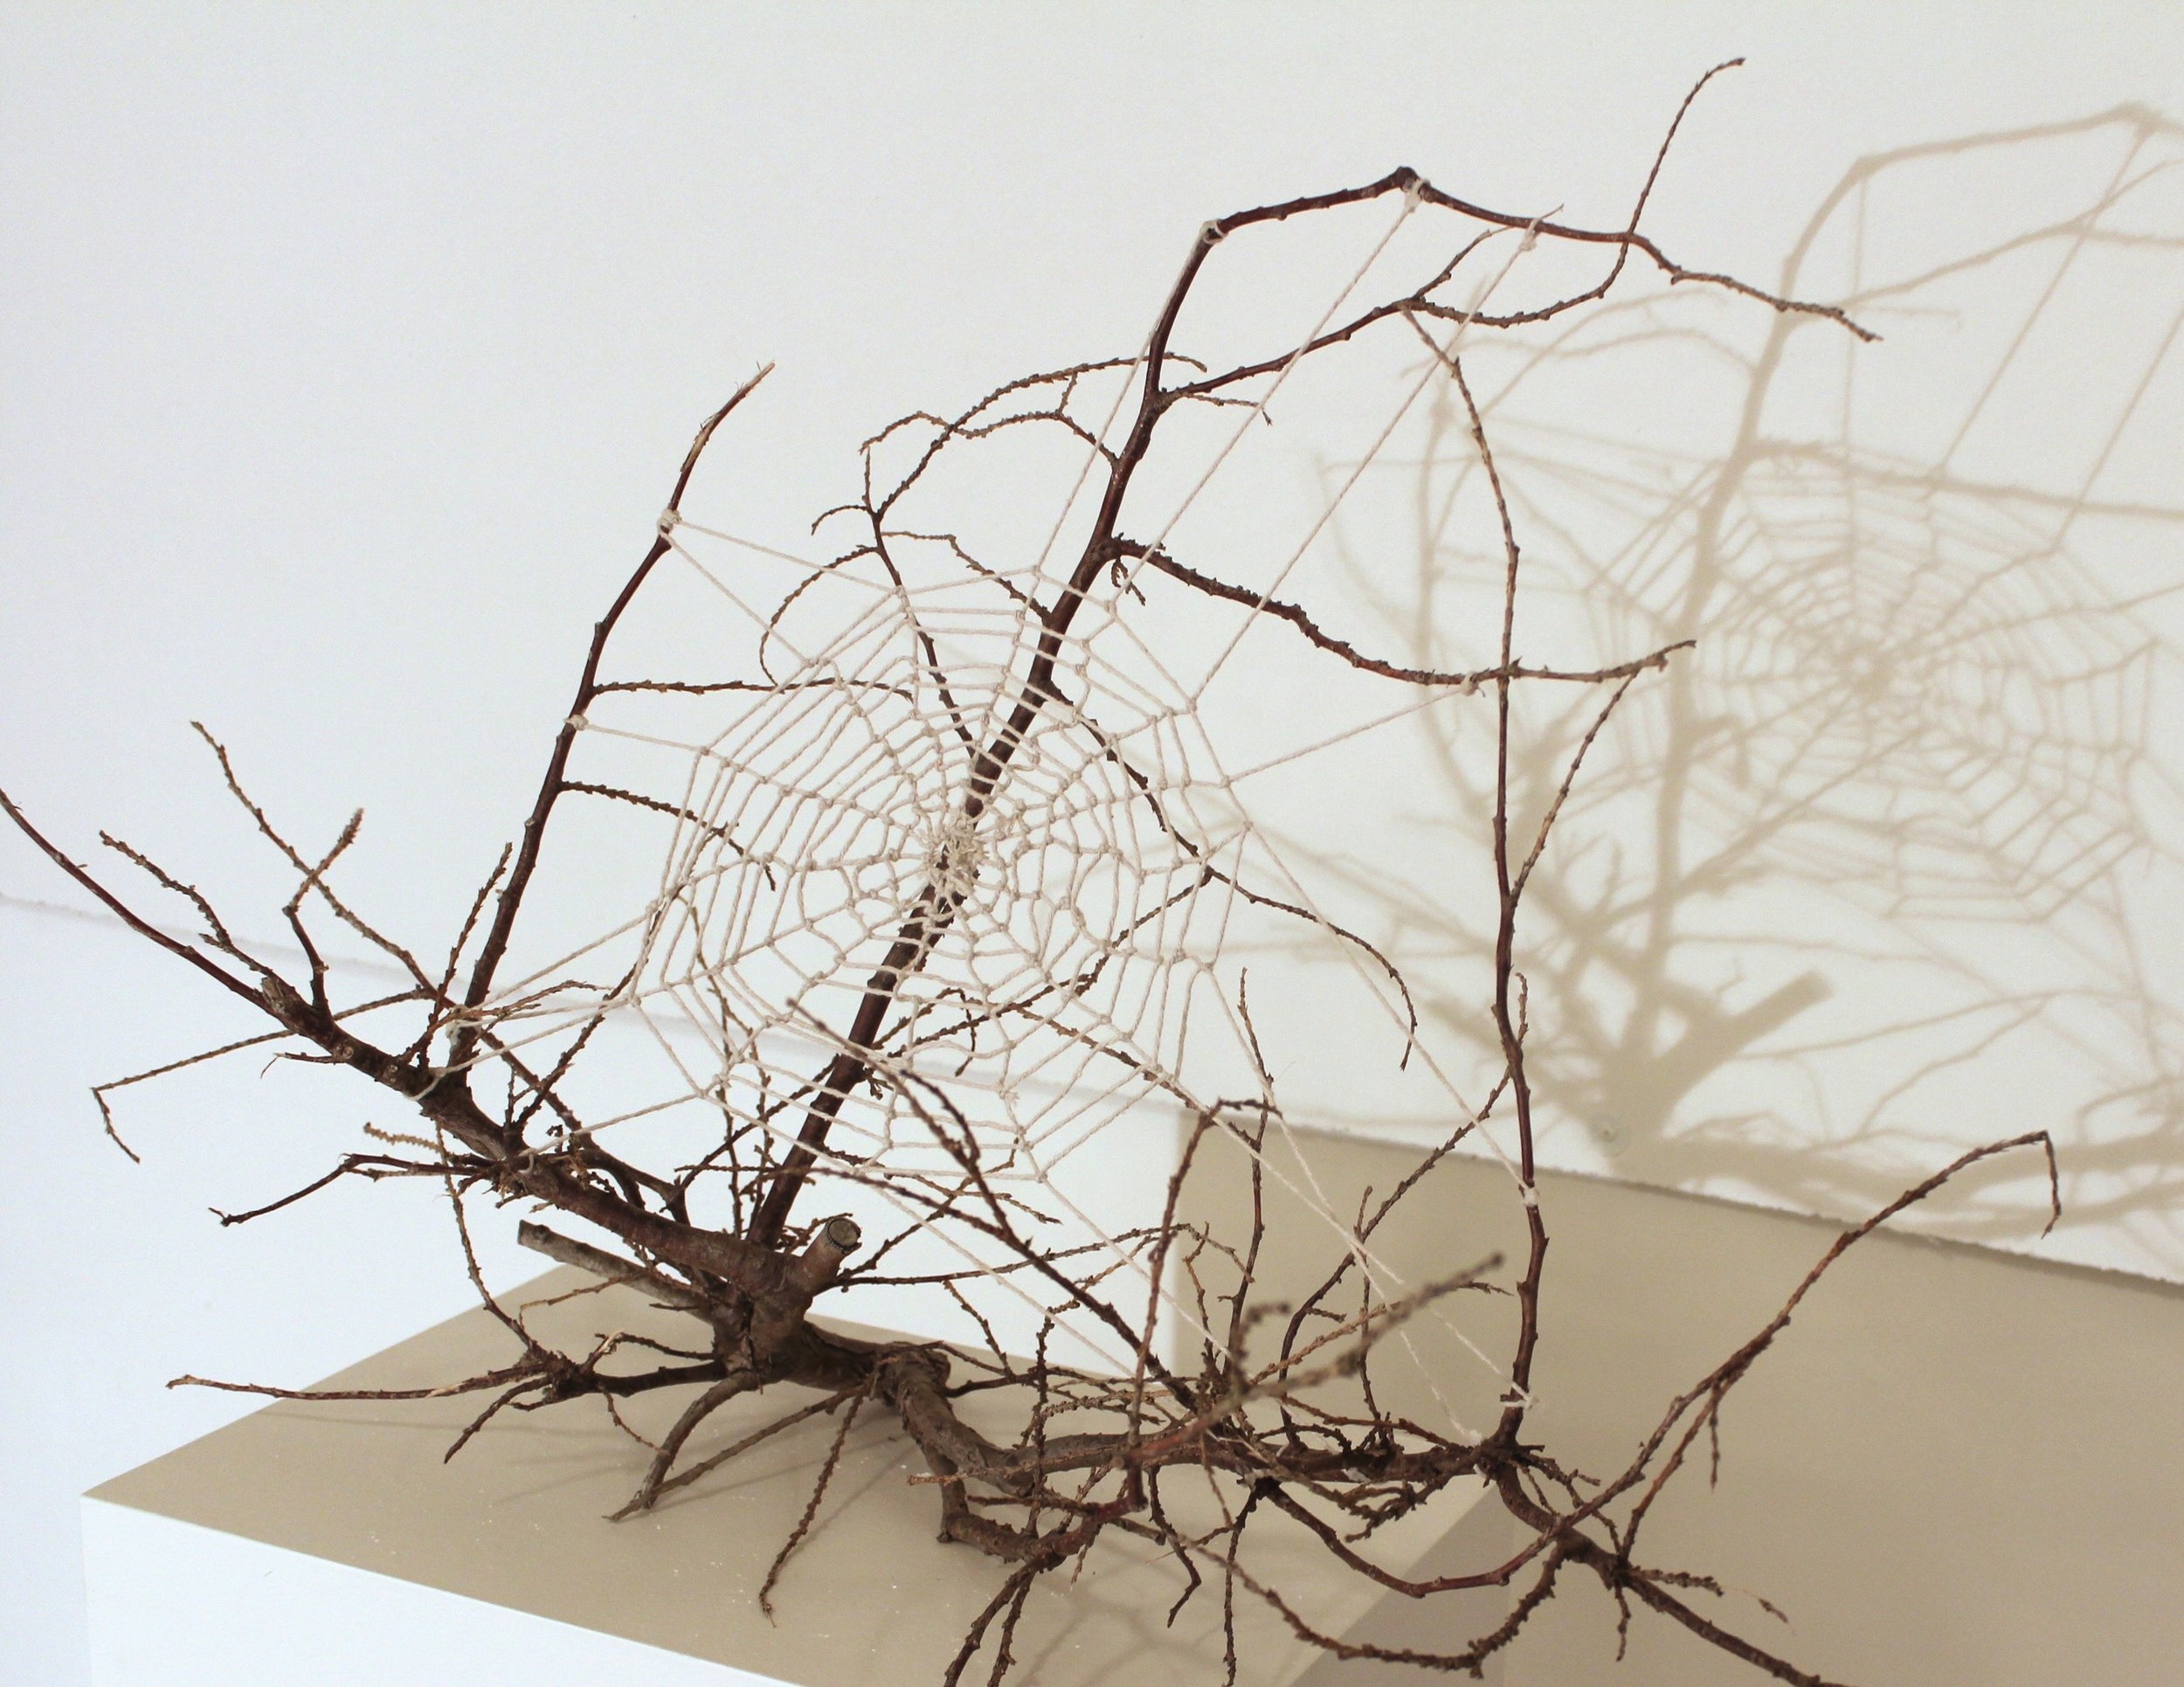 Spider Web, tree branch and cotton rope, 12 x 10 x 10 inches, 2017